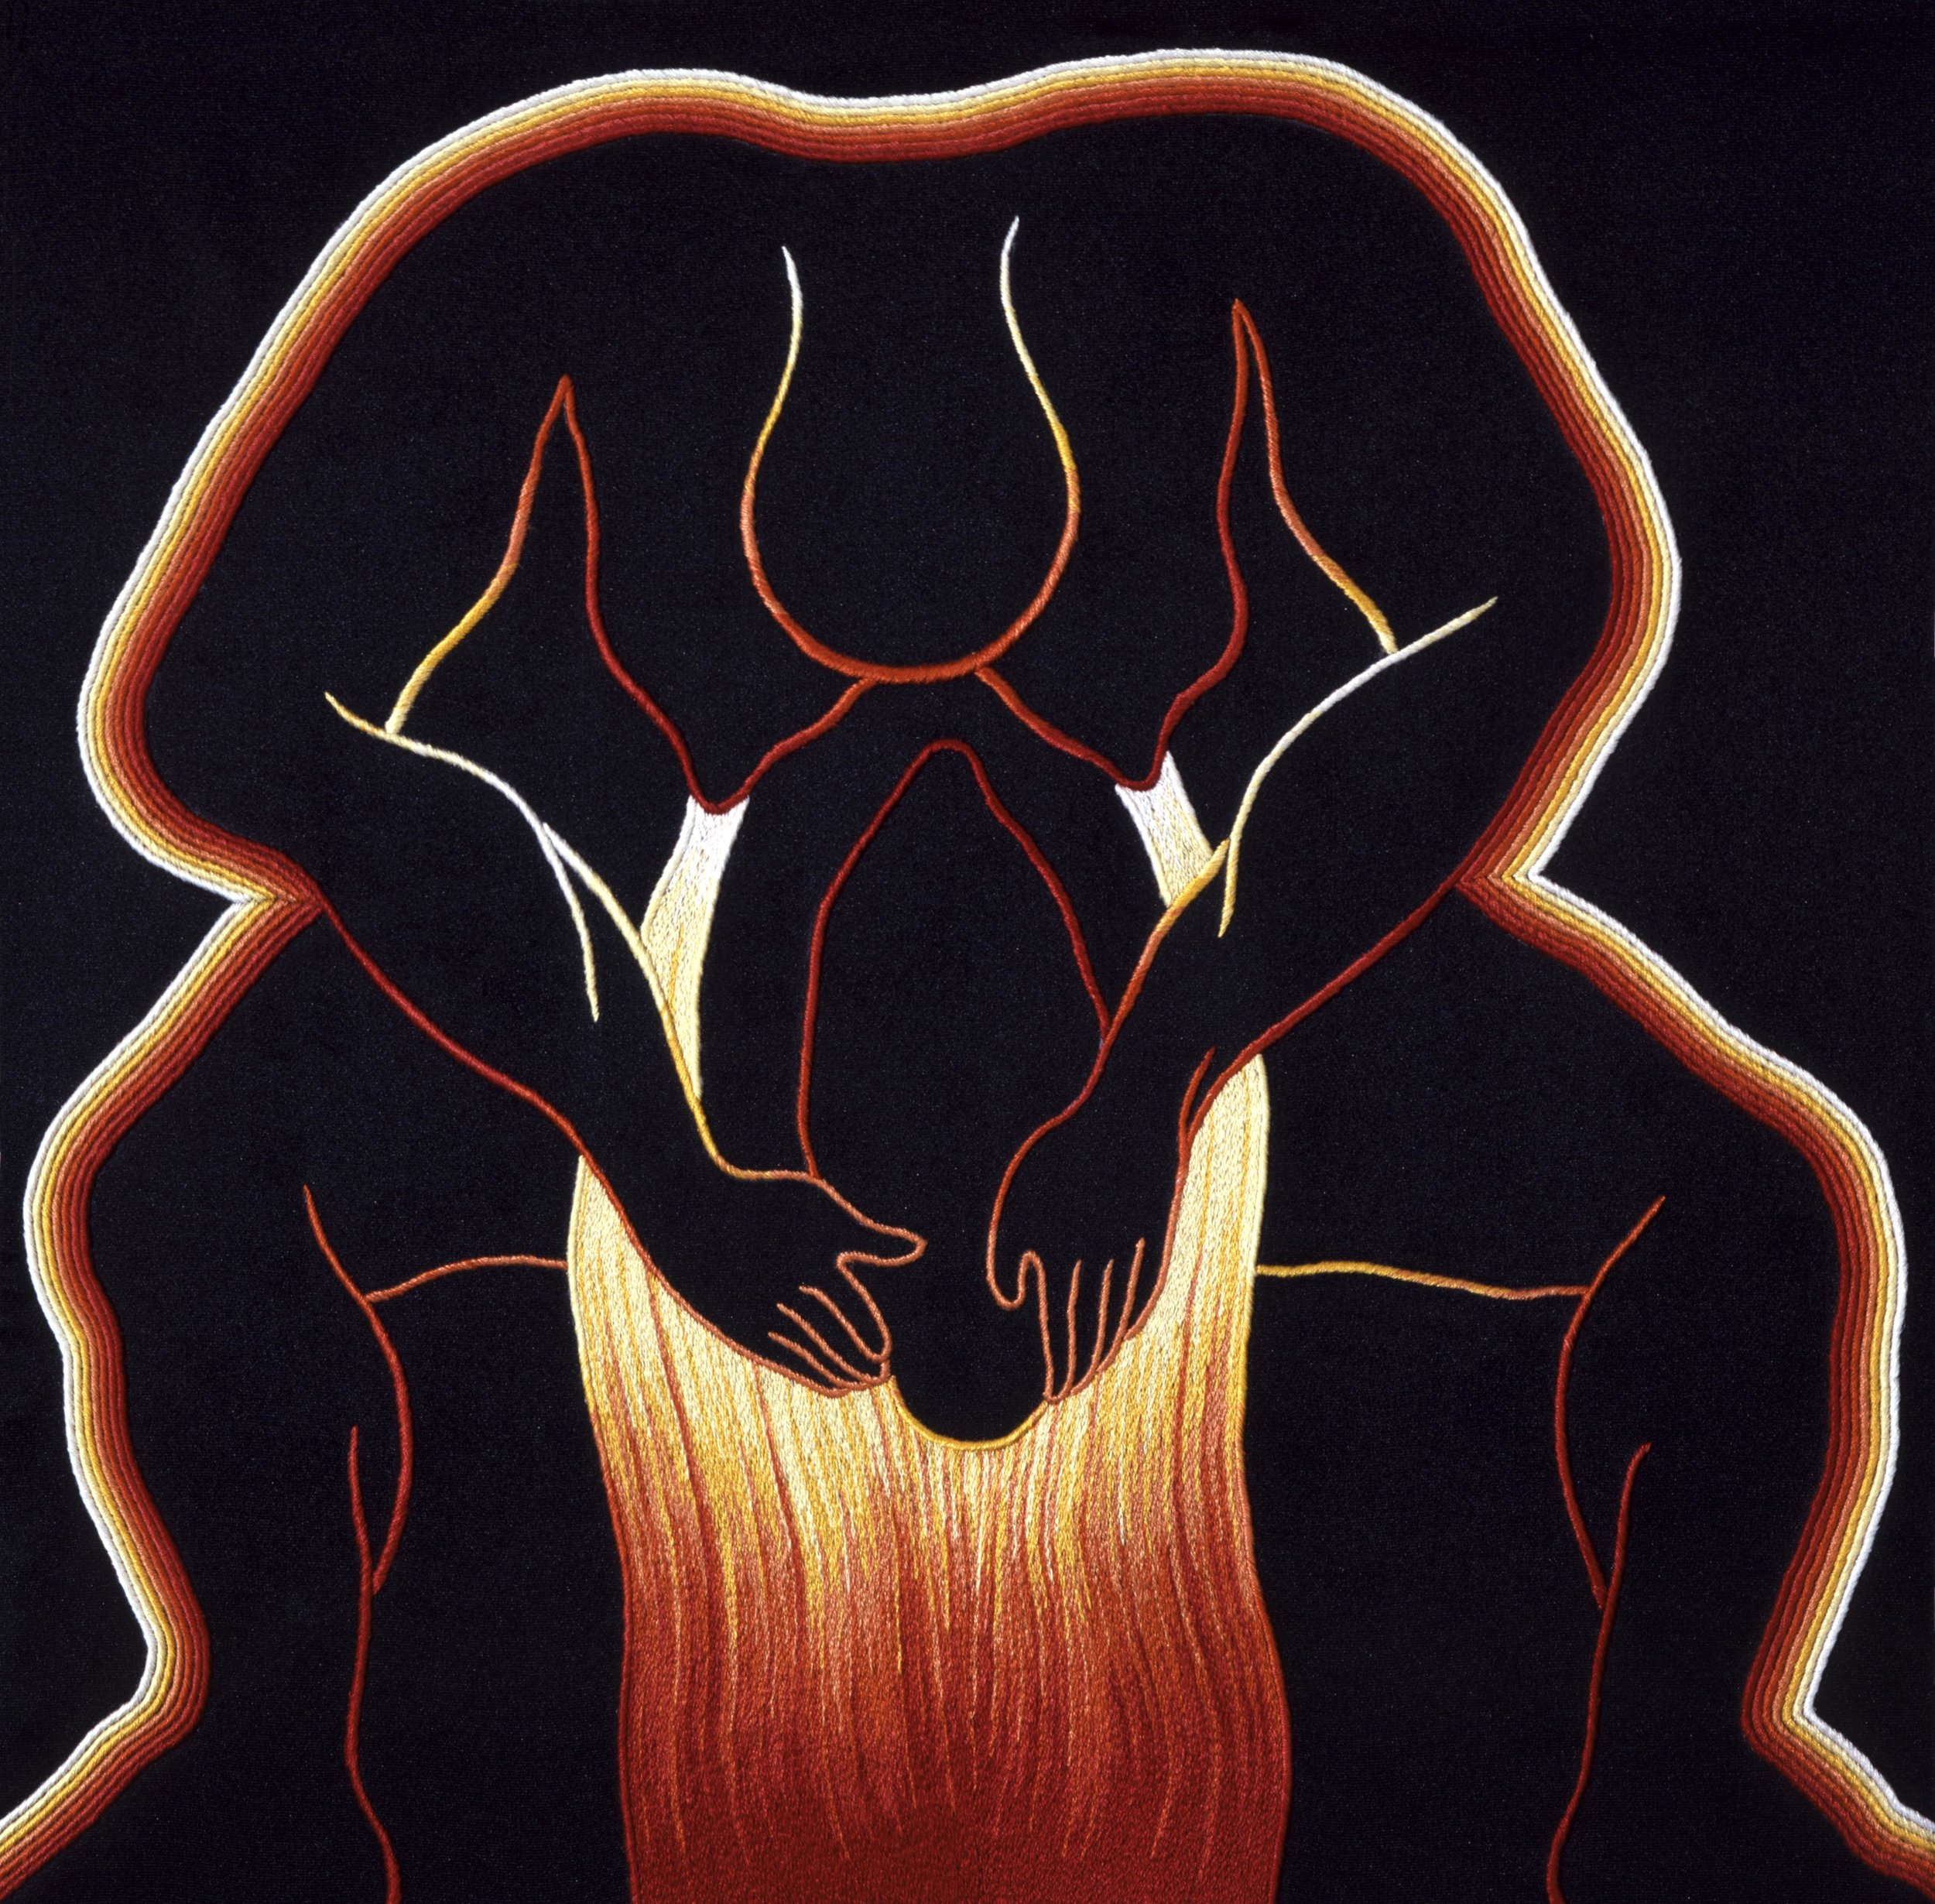 Judy Chicago, Birth Power, 1984, Embroidery over drawing on silk, 20 x 20 inches. Needlework by Sandie Abel © Judy Chicago